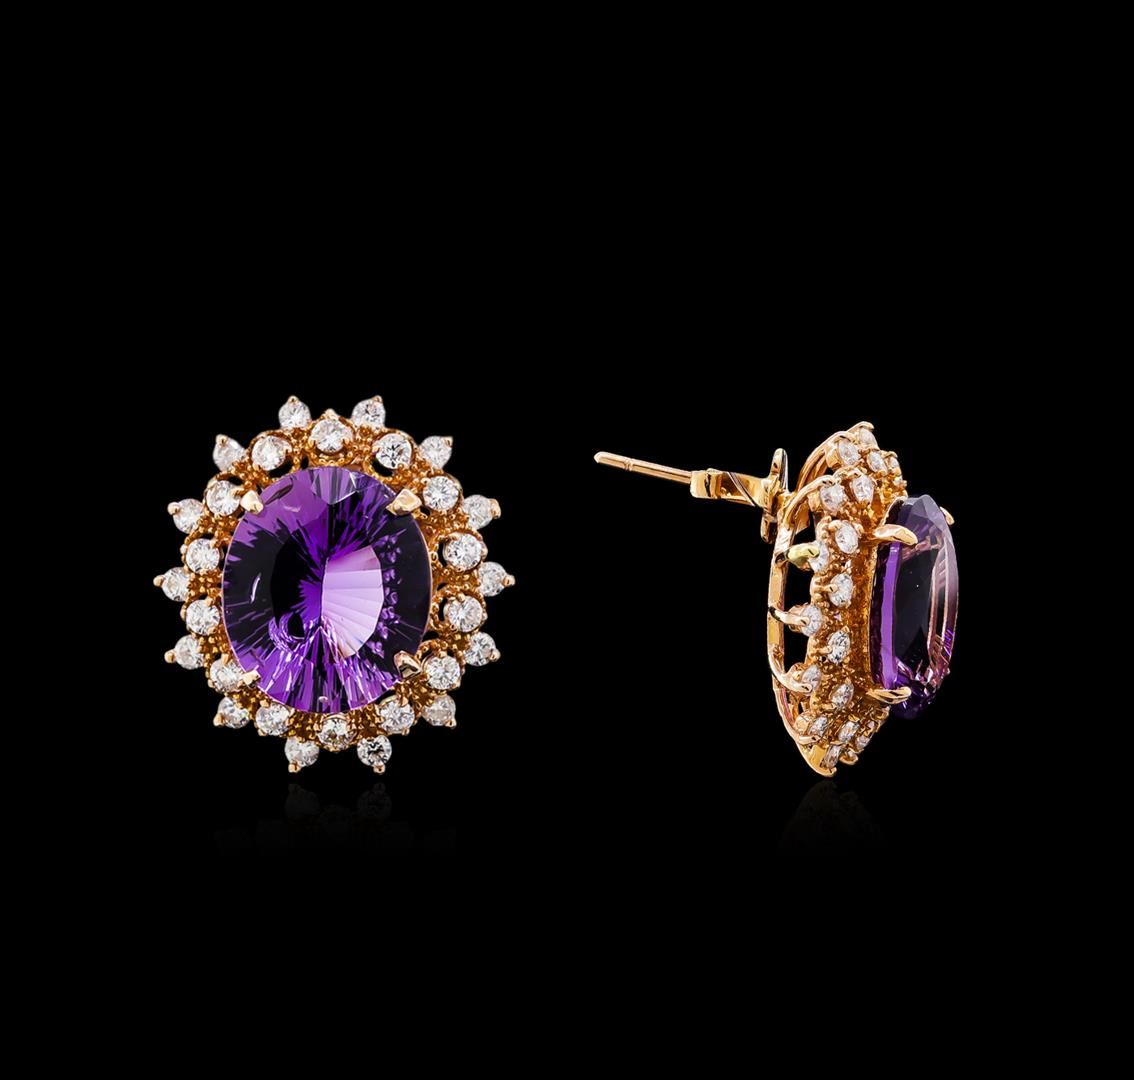 amethyst gemstone jewelry - photo #30